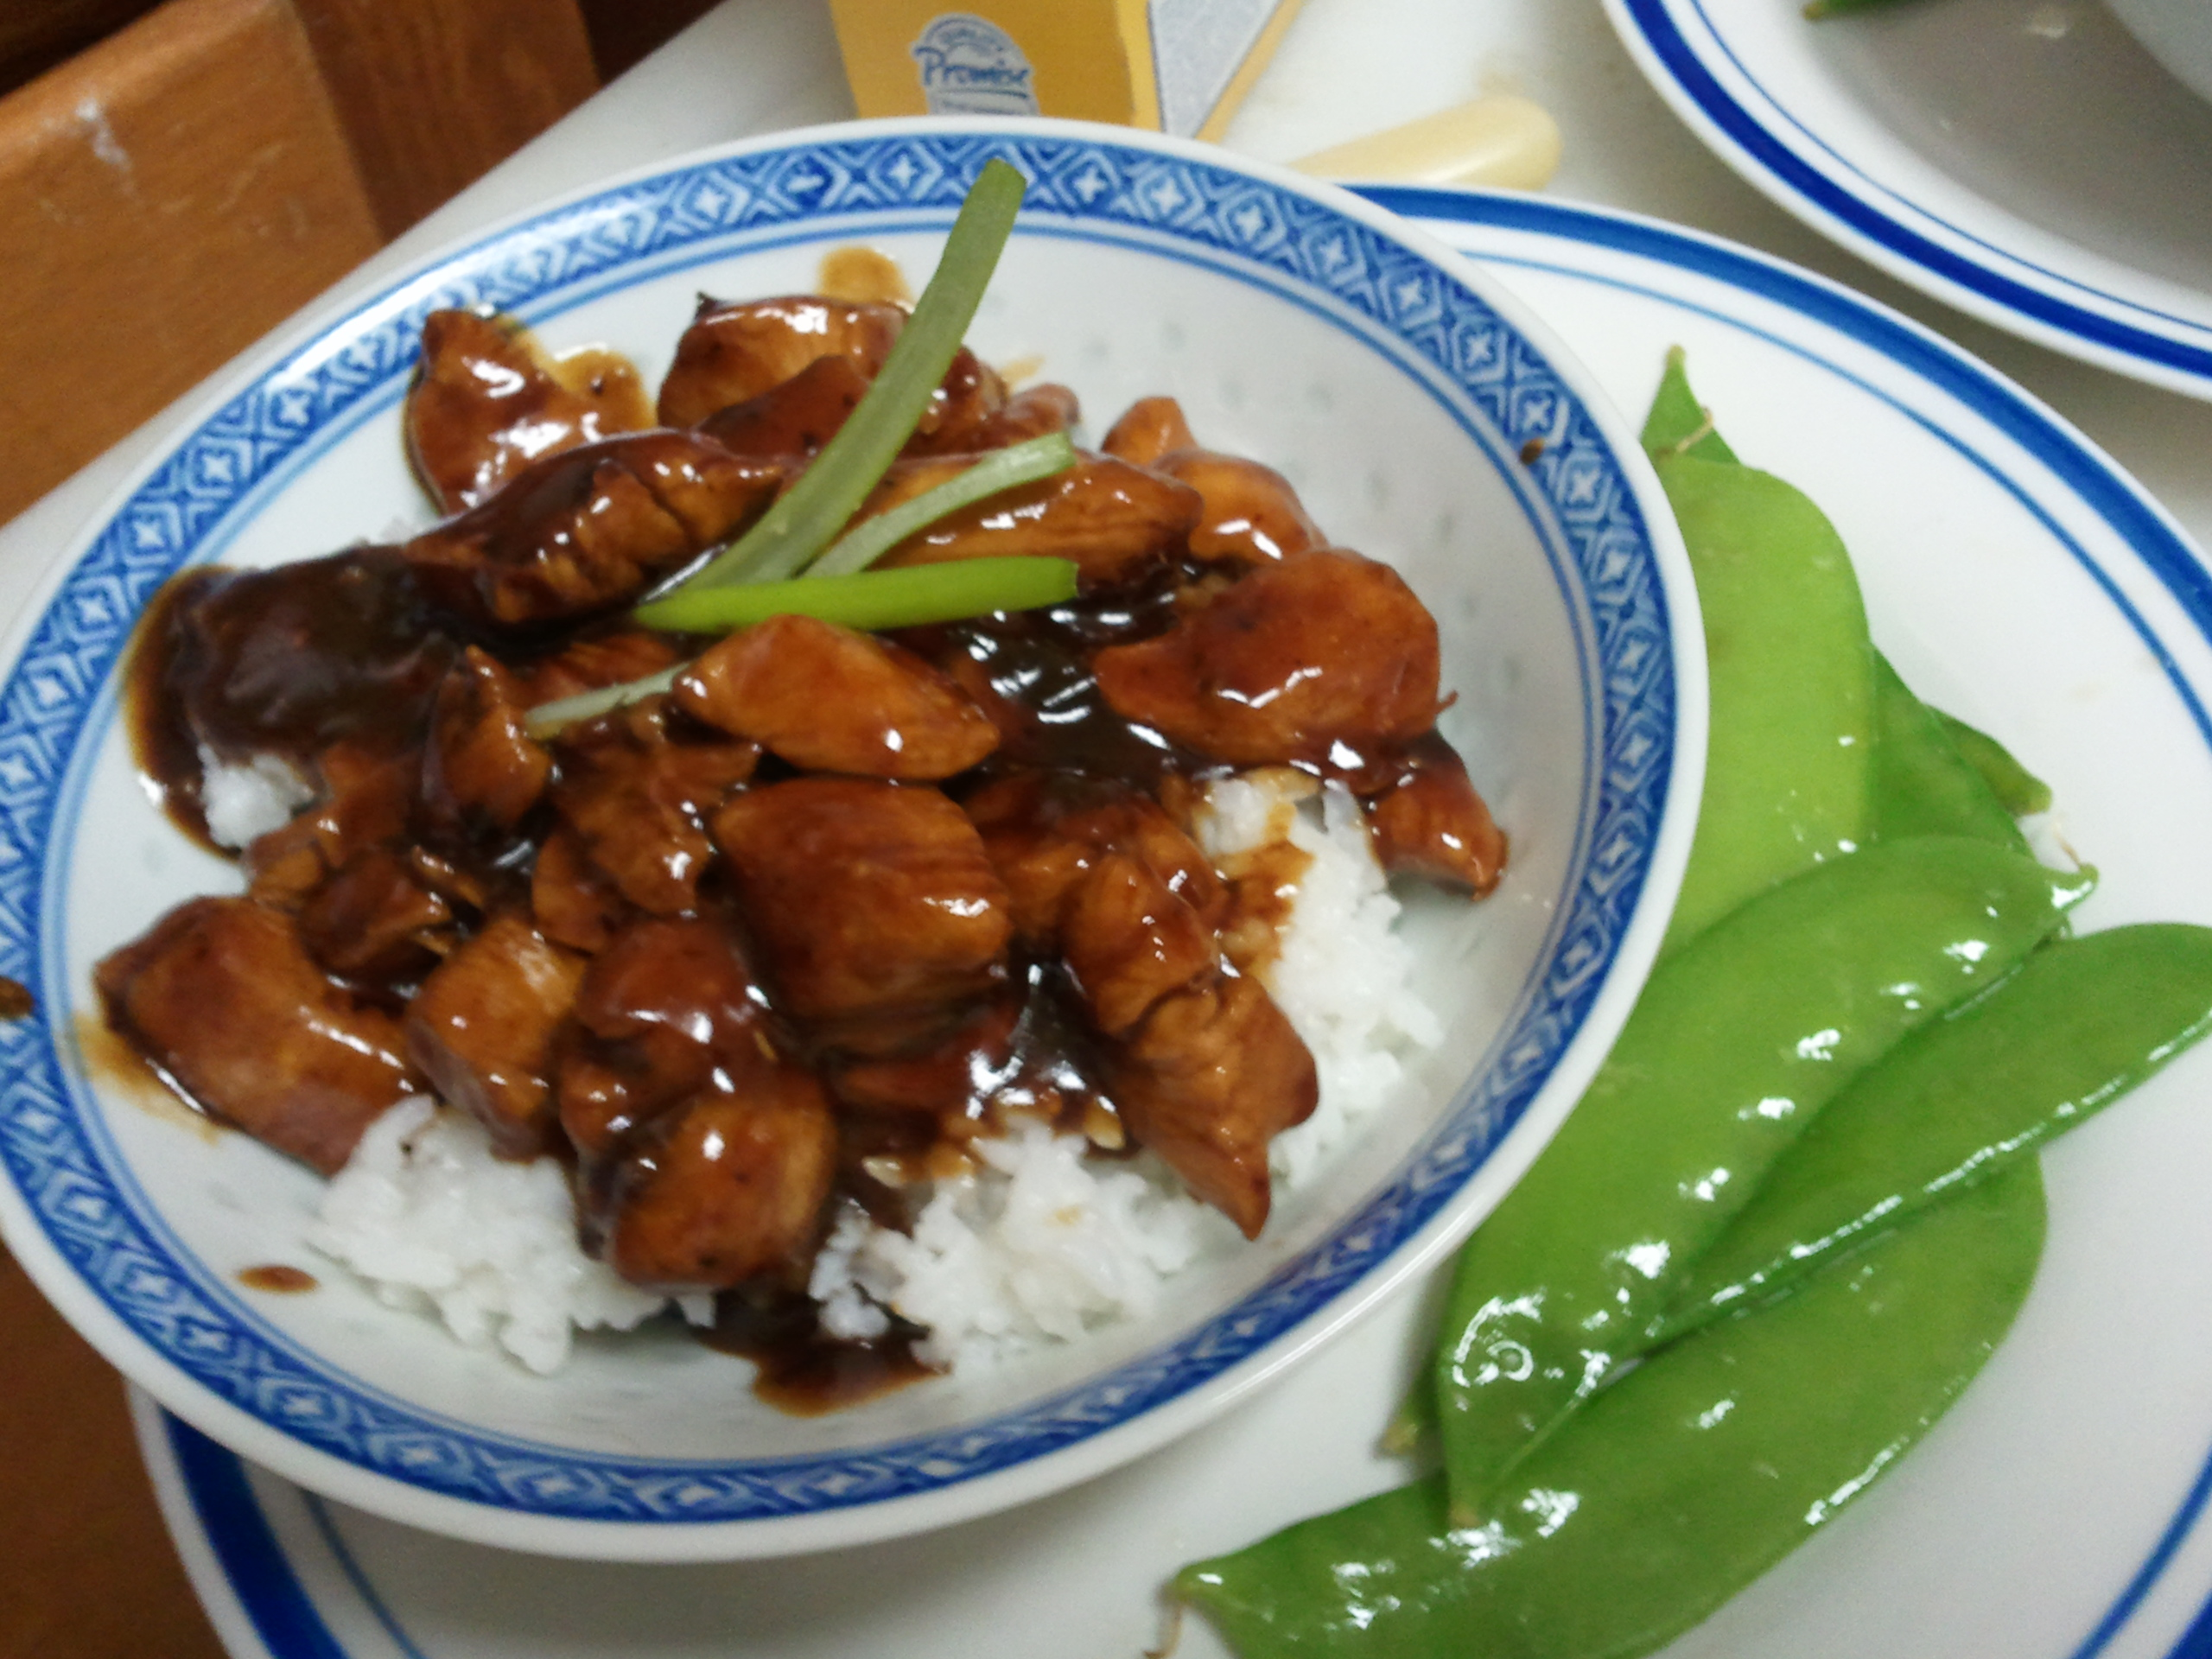 fine-lookin' Chinese meal